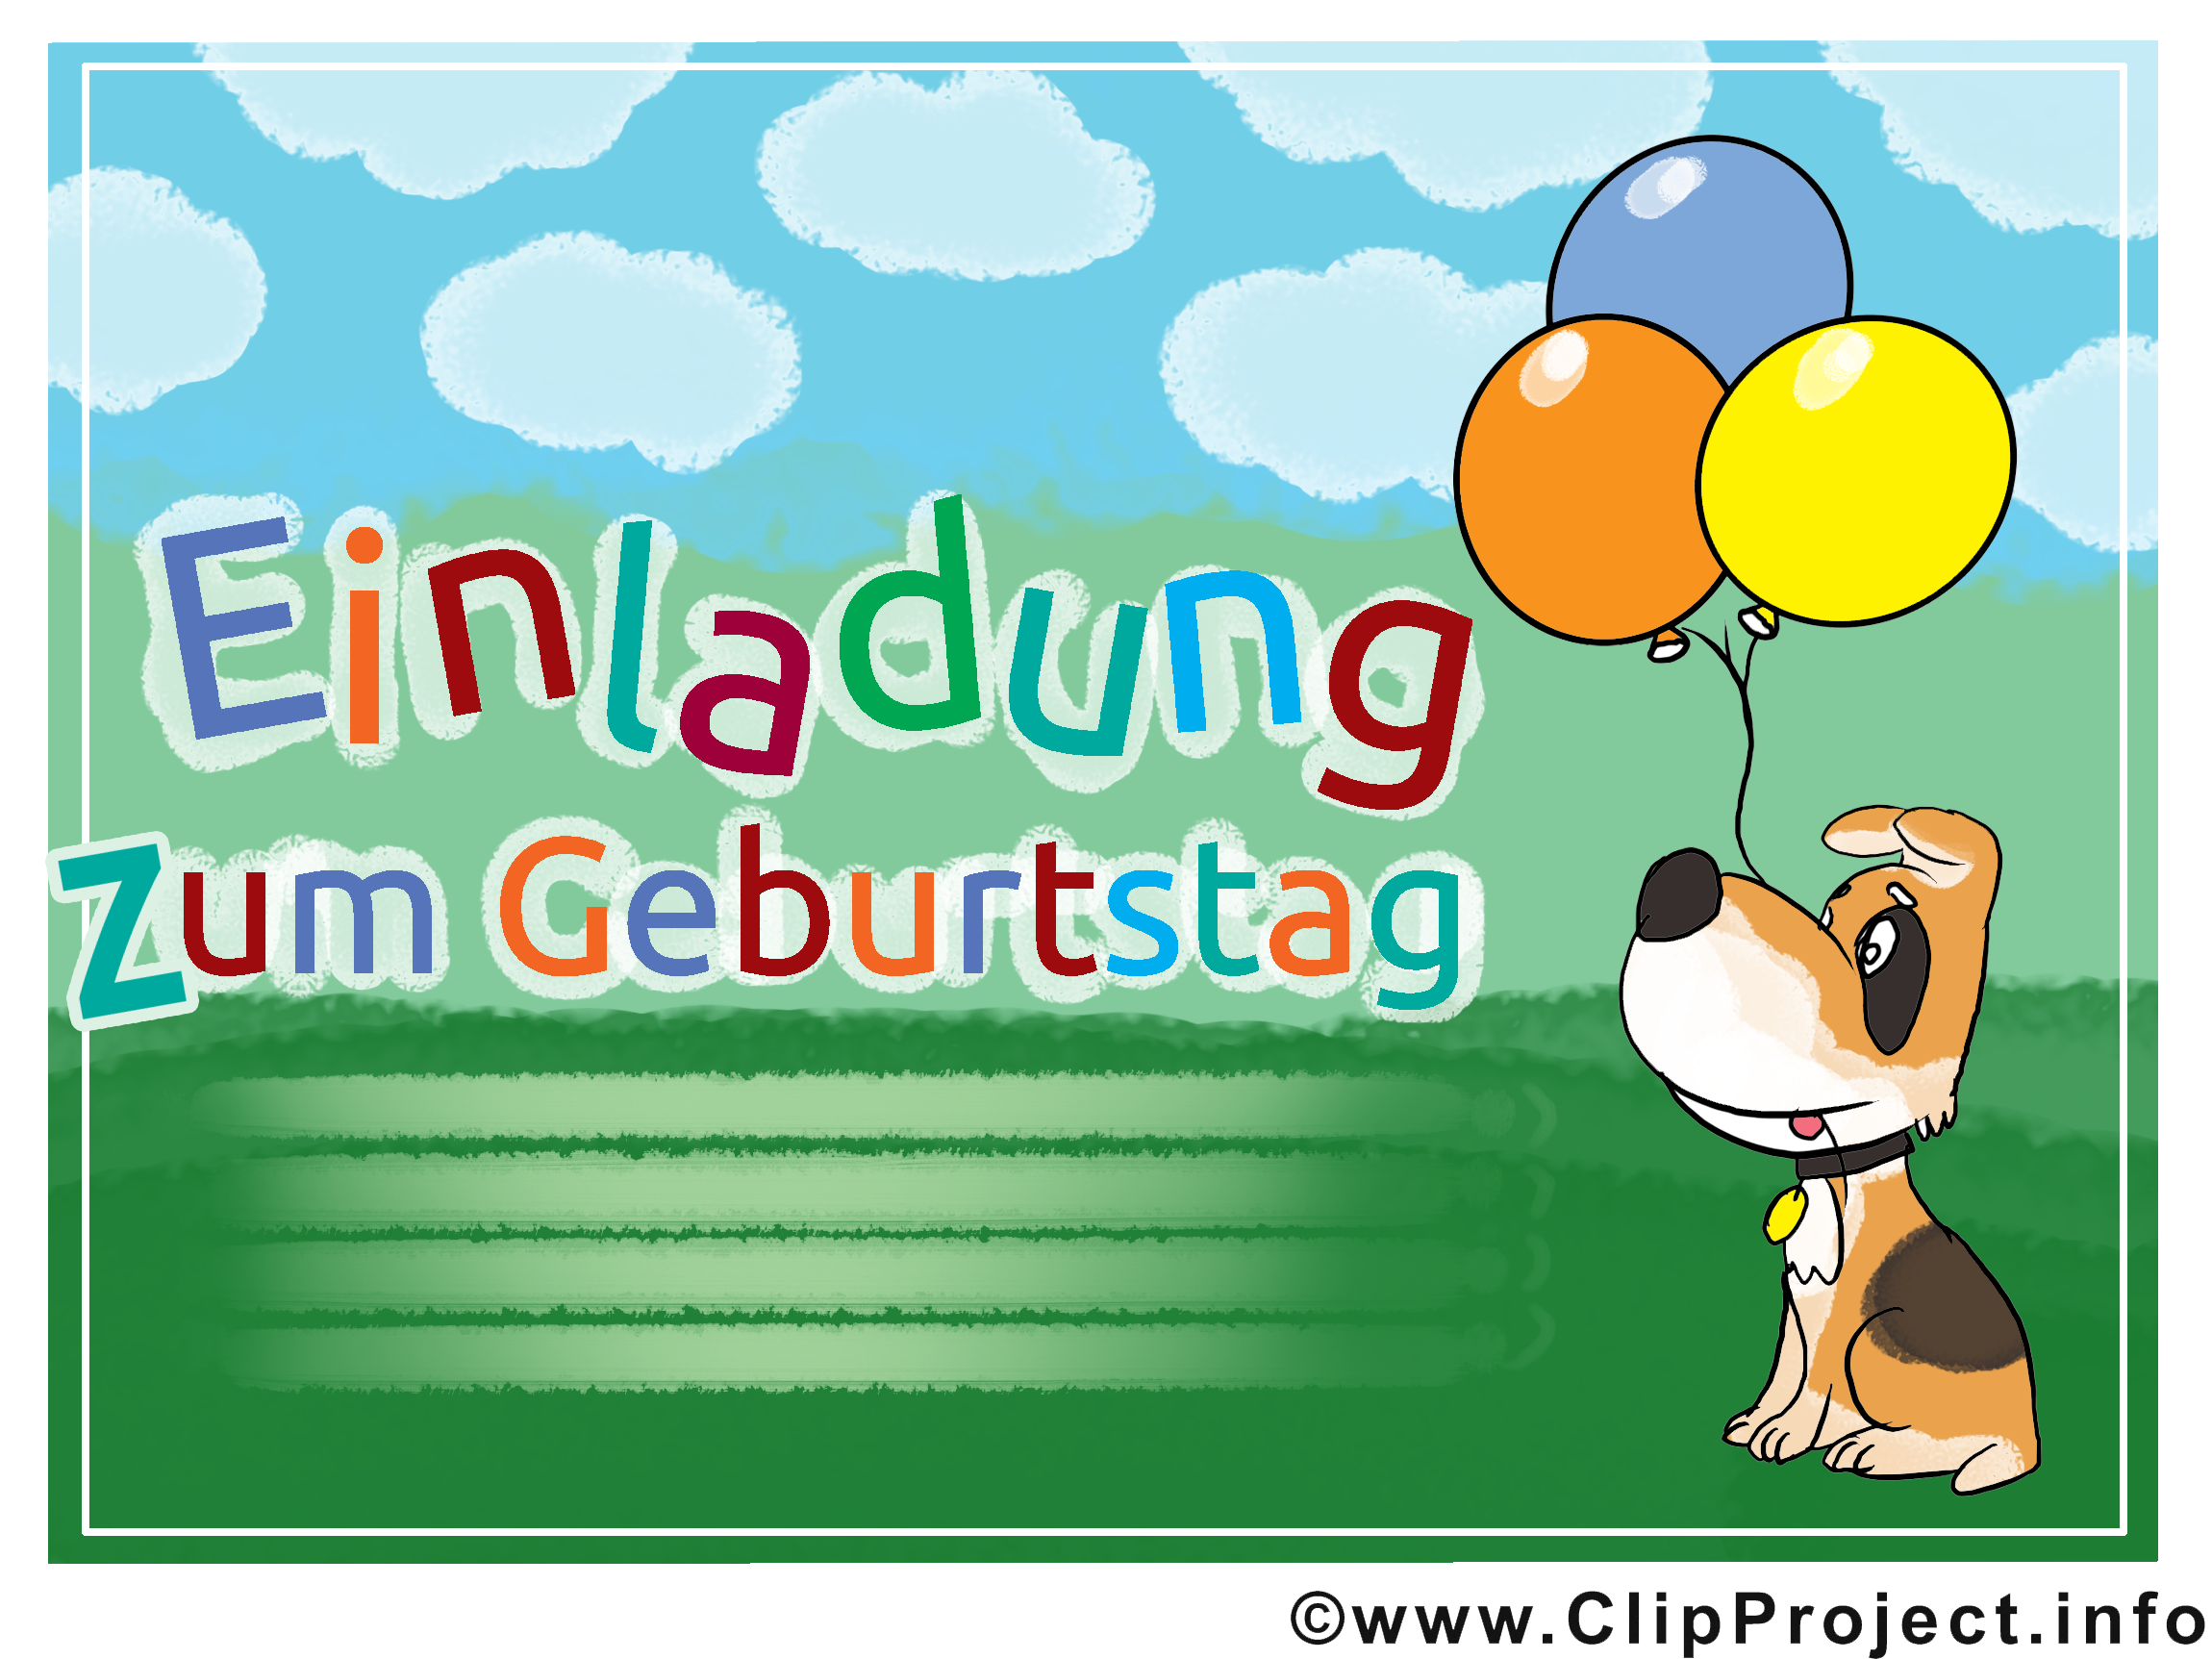 Clipart 50 geburtstag einladung graphic royalty free Cliparts Geburtstag Einladung | unboxiousguru.co graphic royalty free